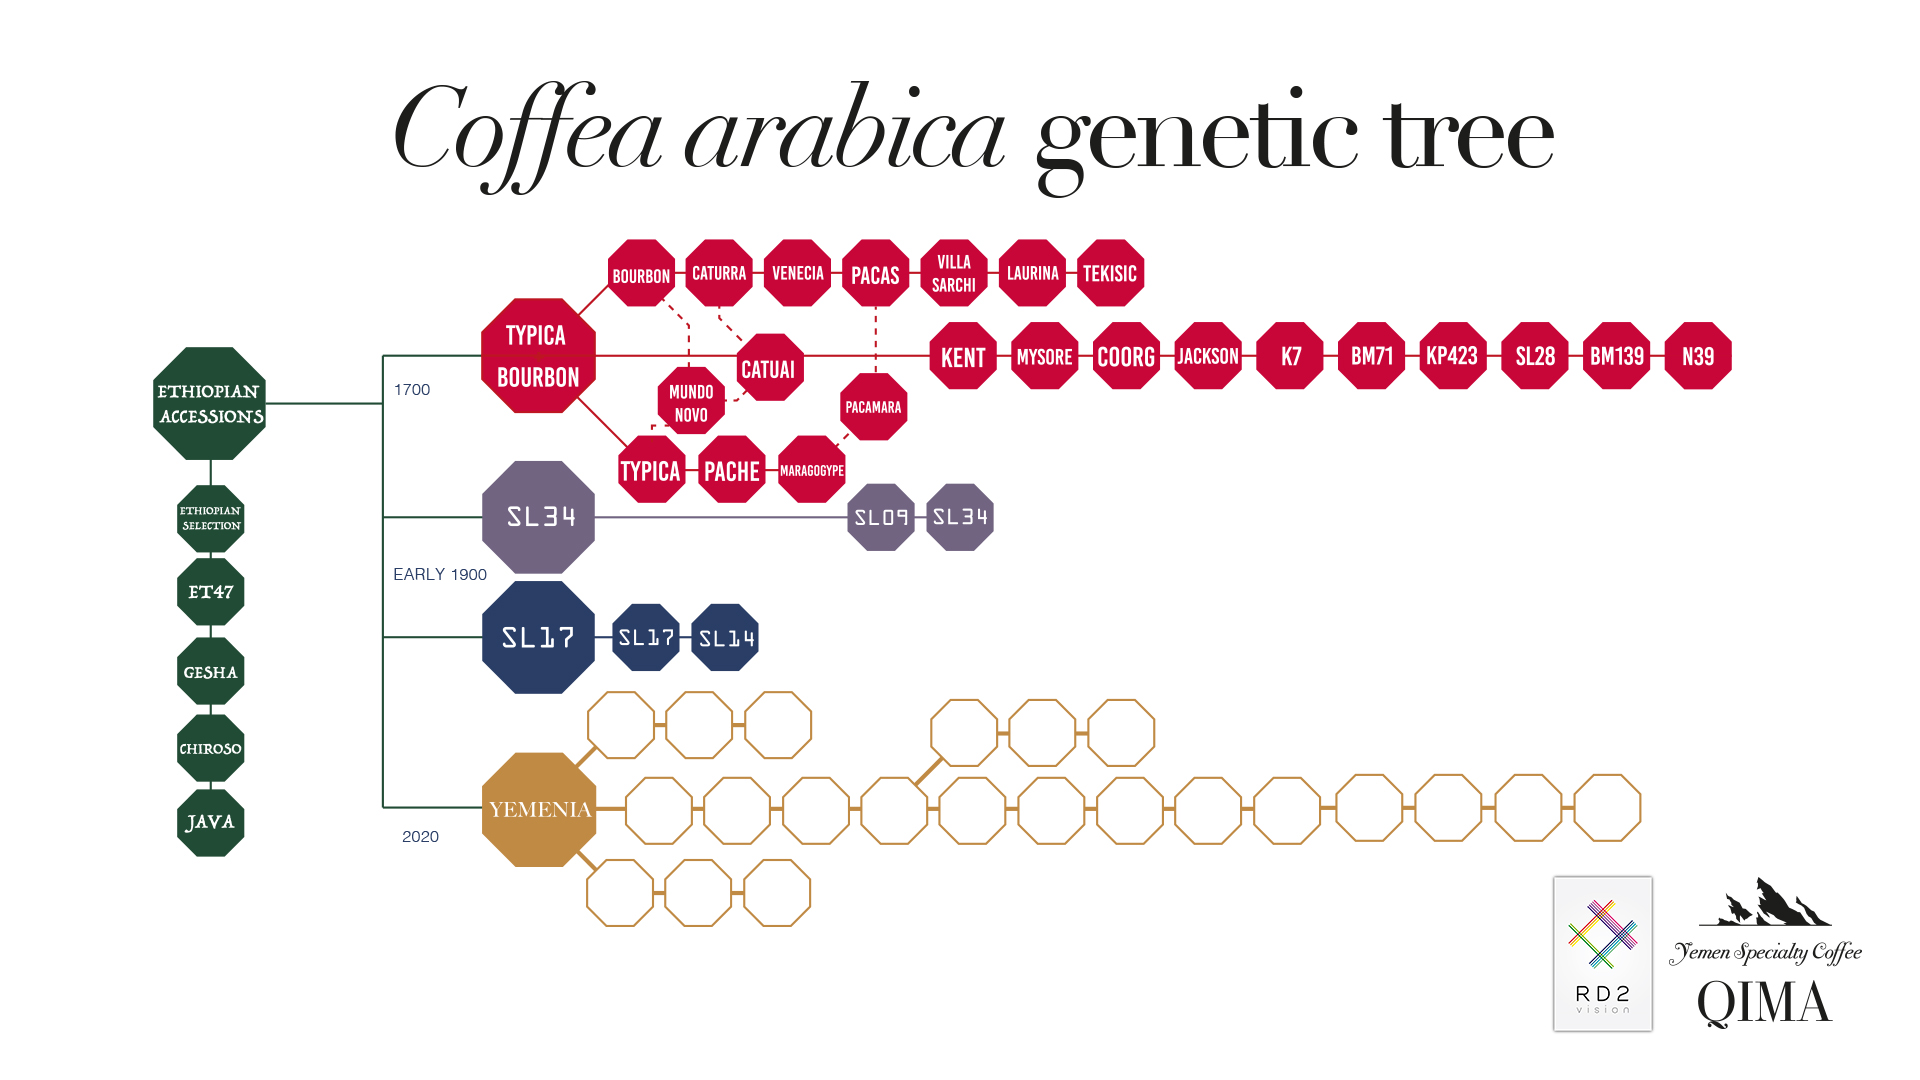 coffea arabica genetic tree copy